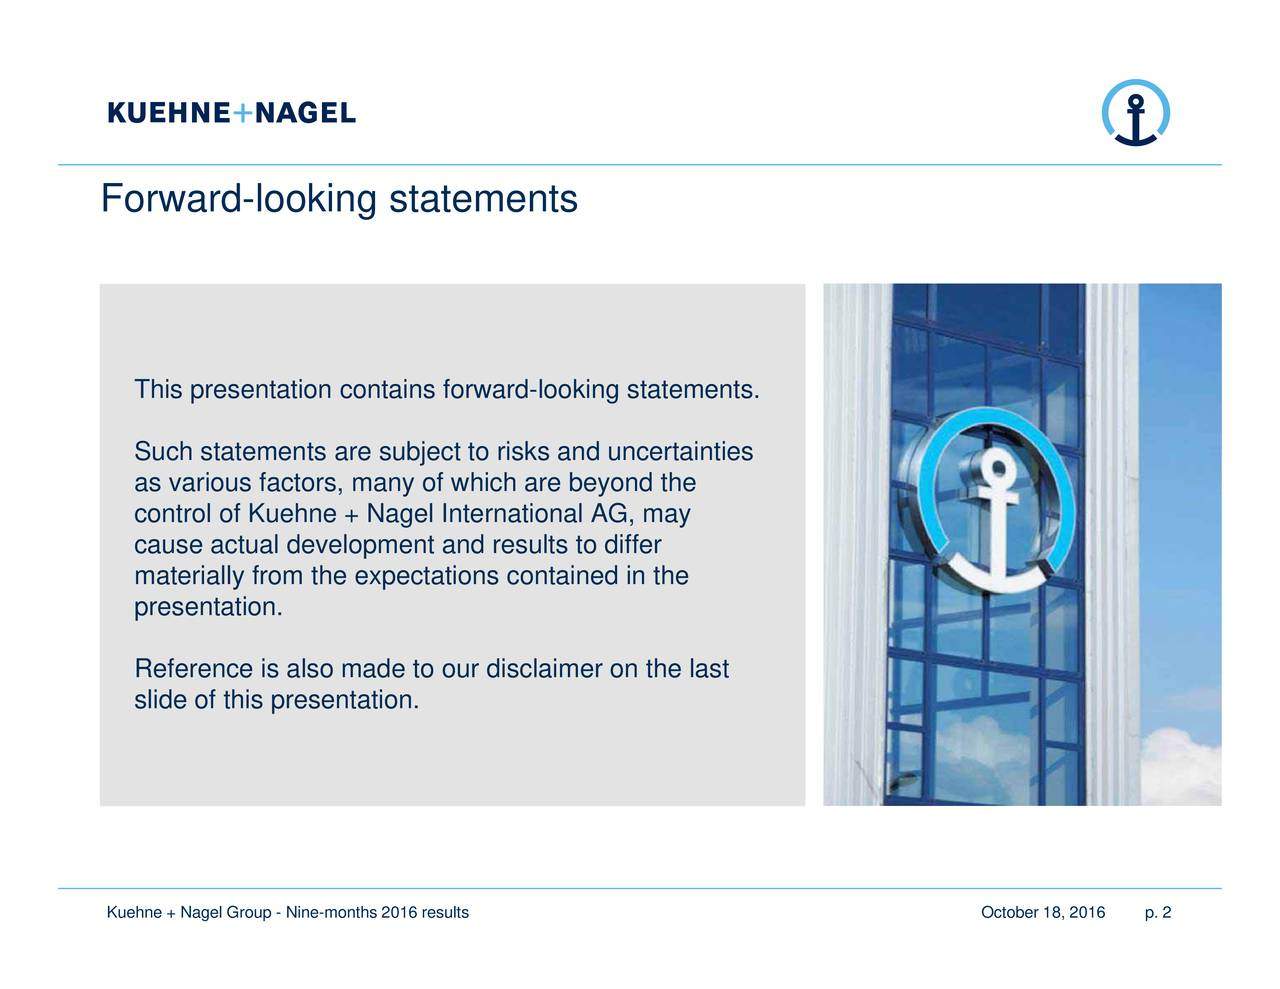 October 18, 2016 forward-looking statements. This presentation containselveycefhlaiksnmnrnsuoon.atdtaclnither on the last Forward-looking statements Kuehne + Nagel Group - Nine-months 2016 results